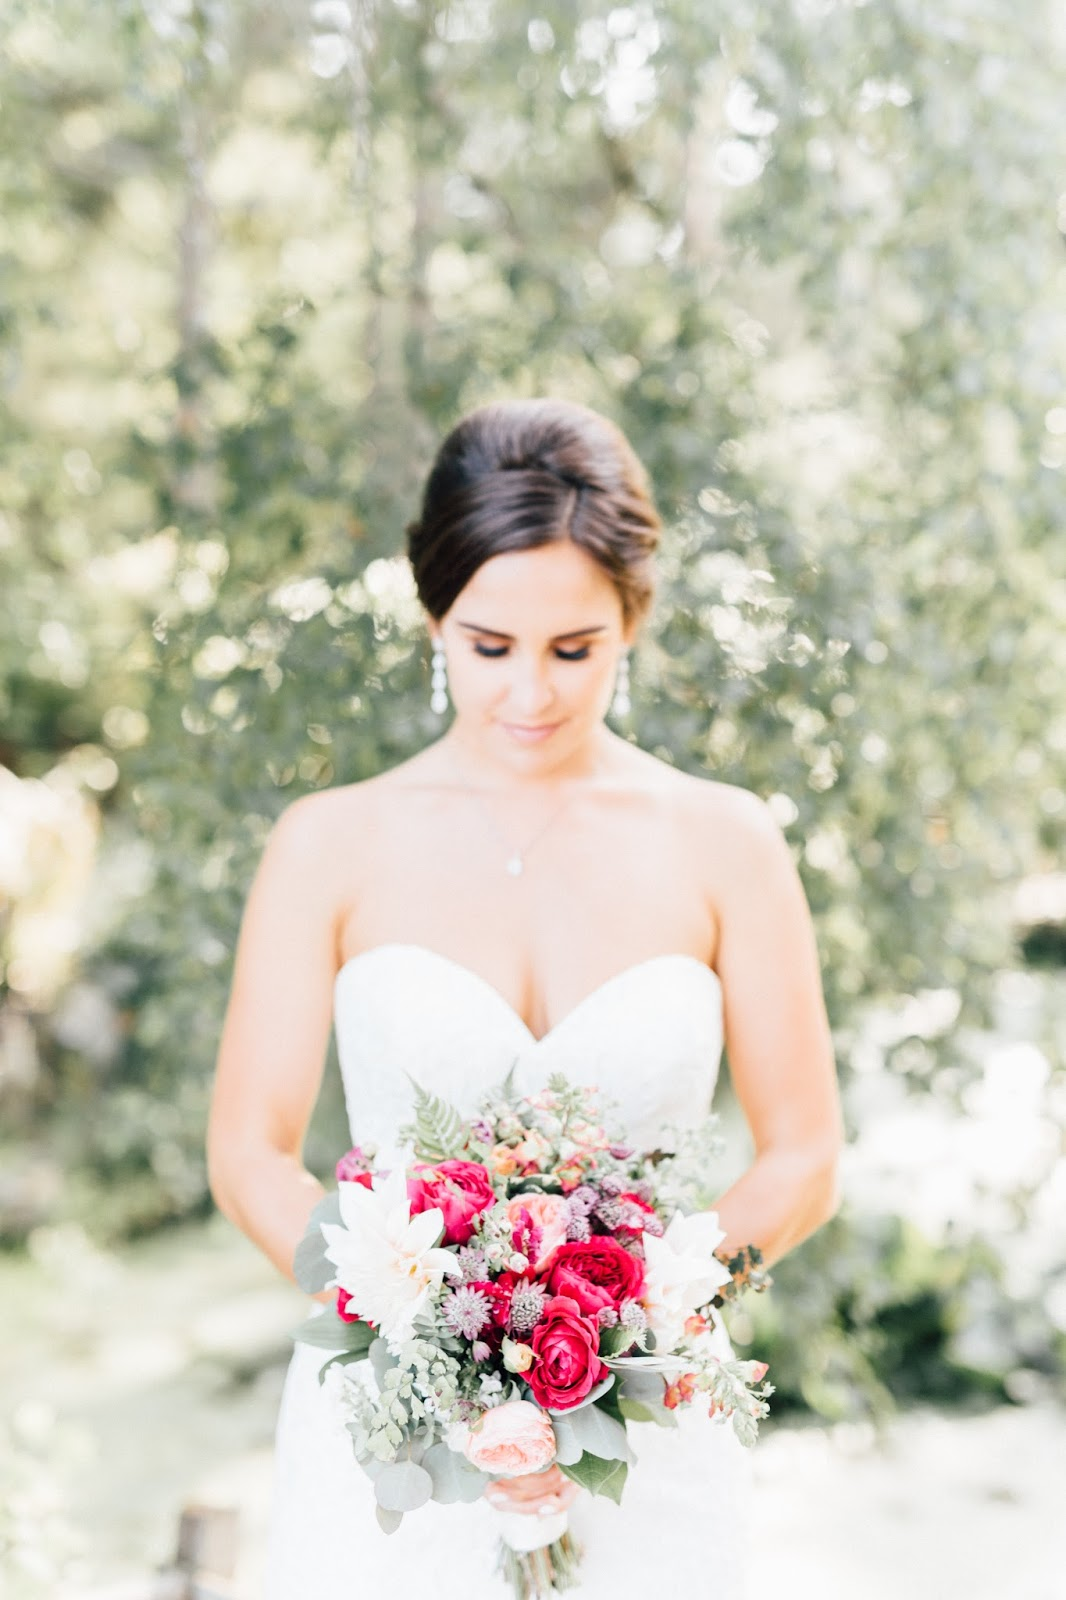 Kiana Lodge Wedding Photography, Bridal Bouquet photographed by Something Minted